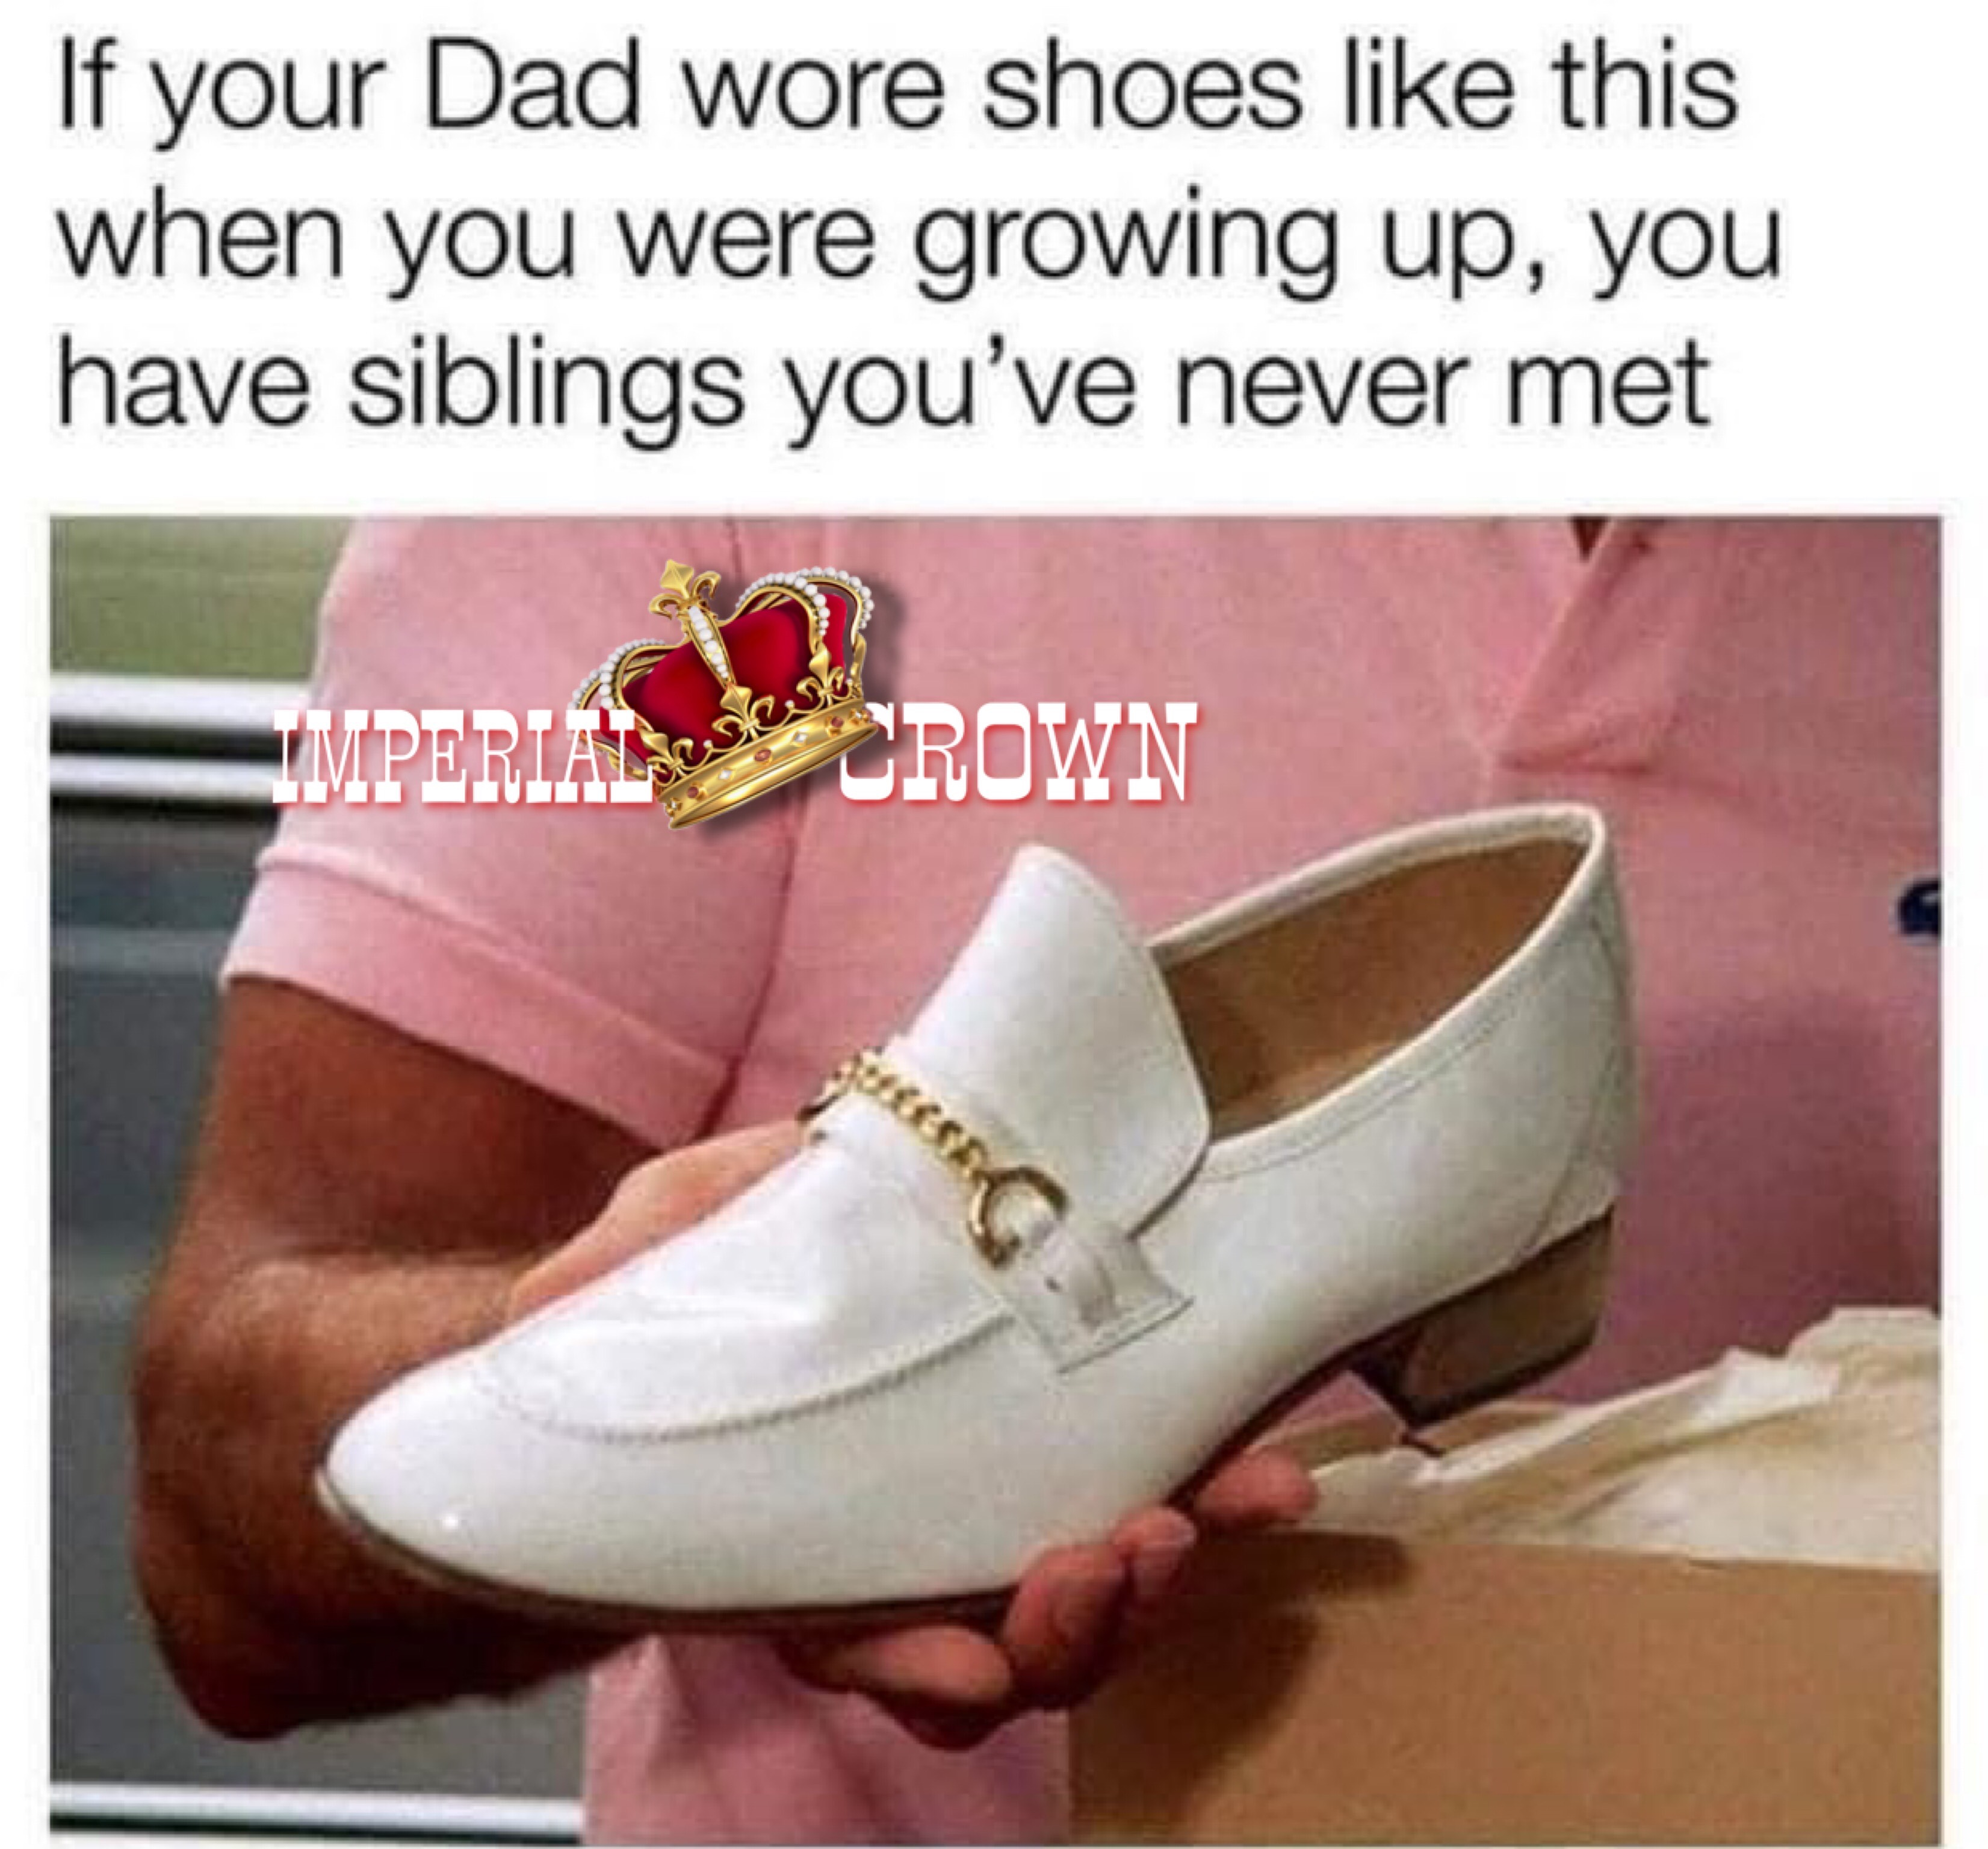 If your dad wore shoes like this when you were growing up you have siblings you never met